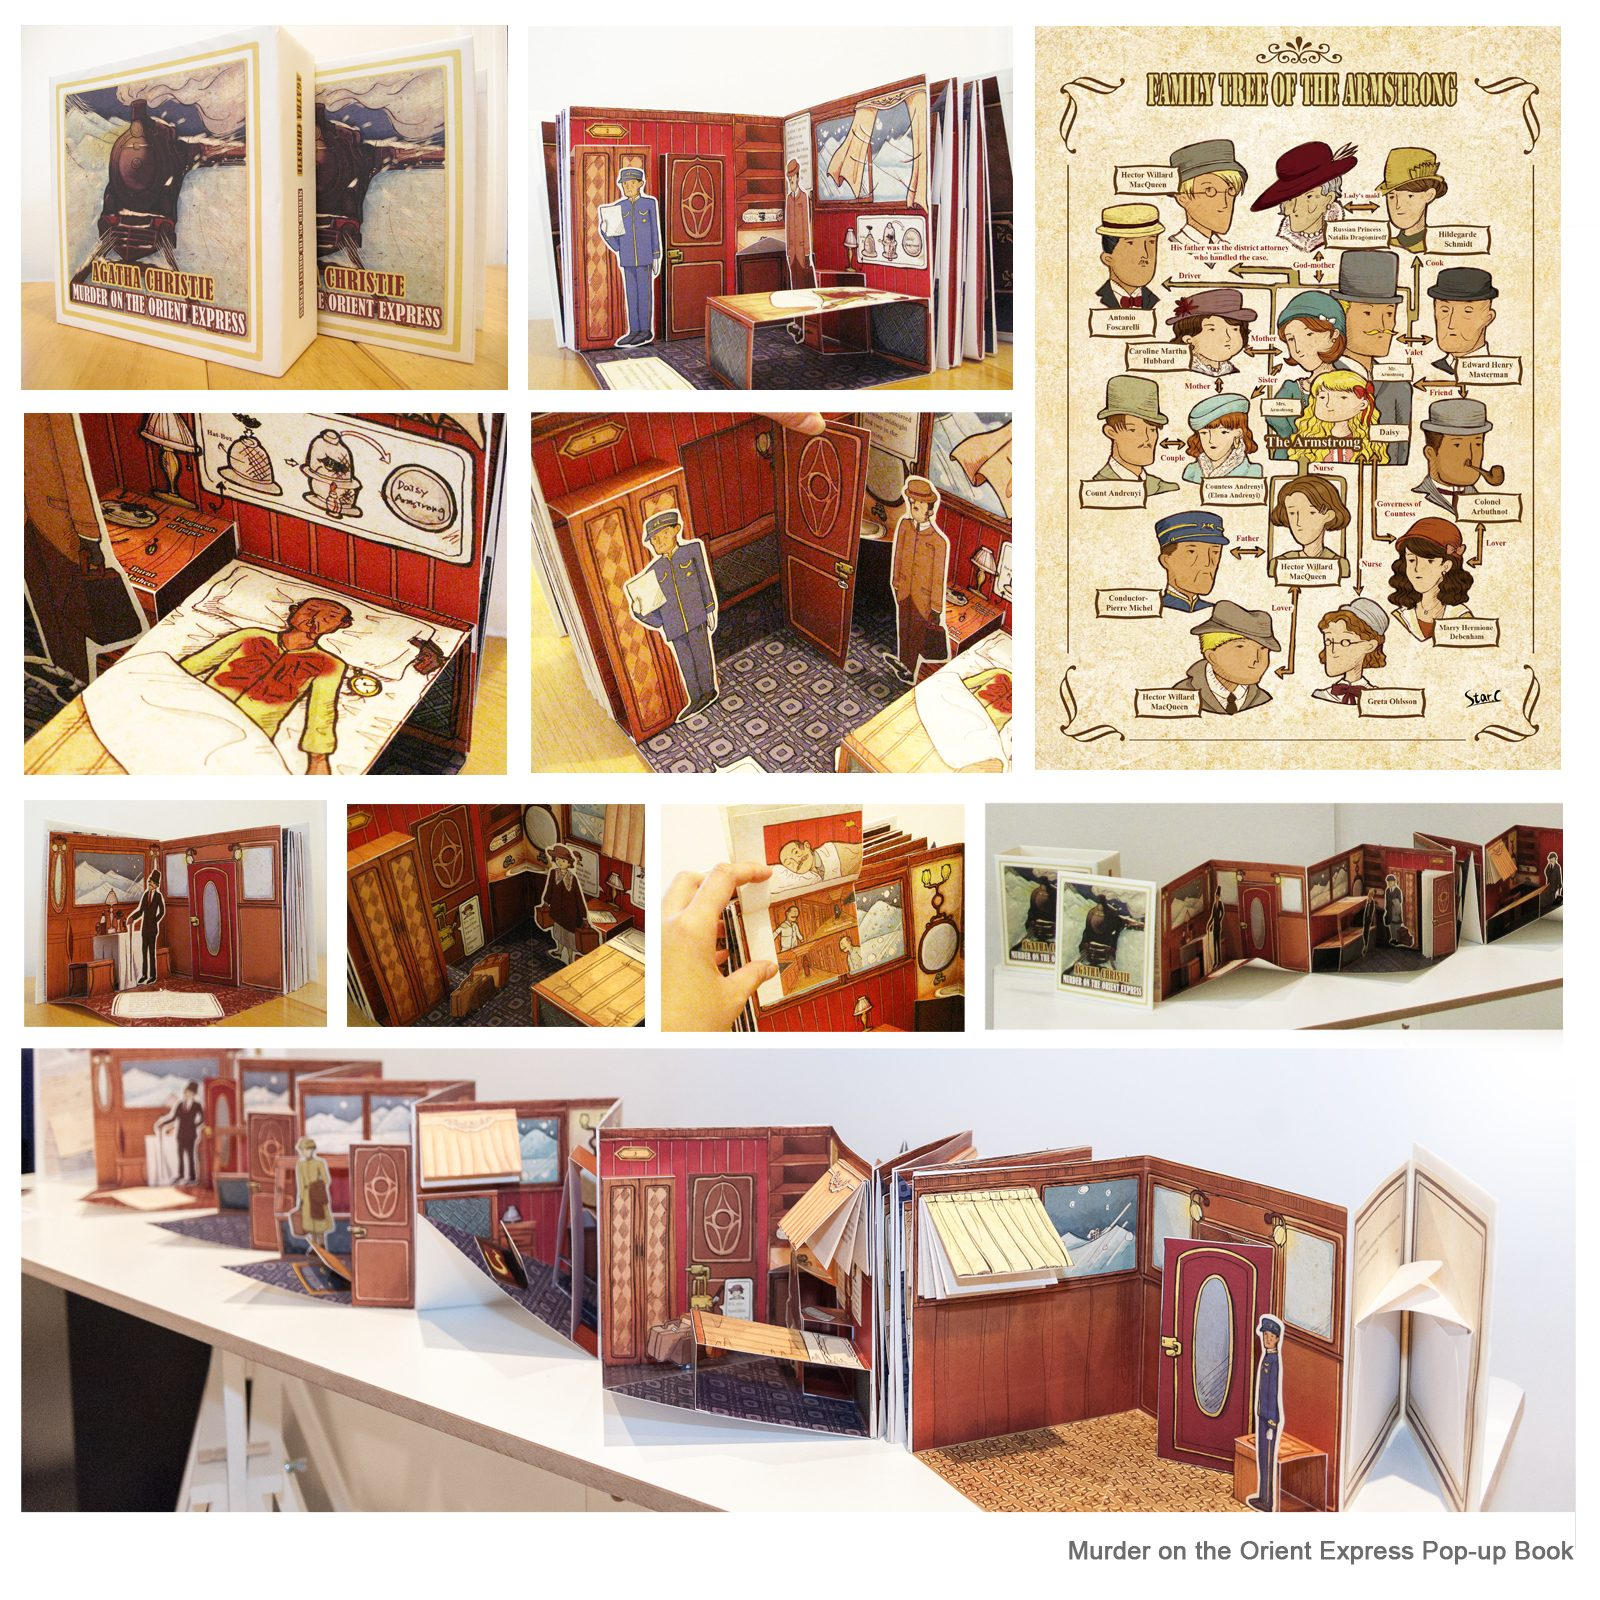 Murder on the Orient Express Pop-up Book – The AOI